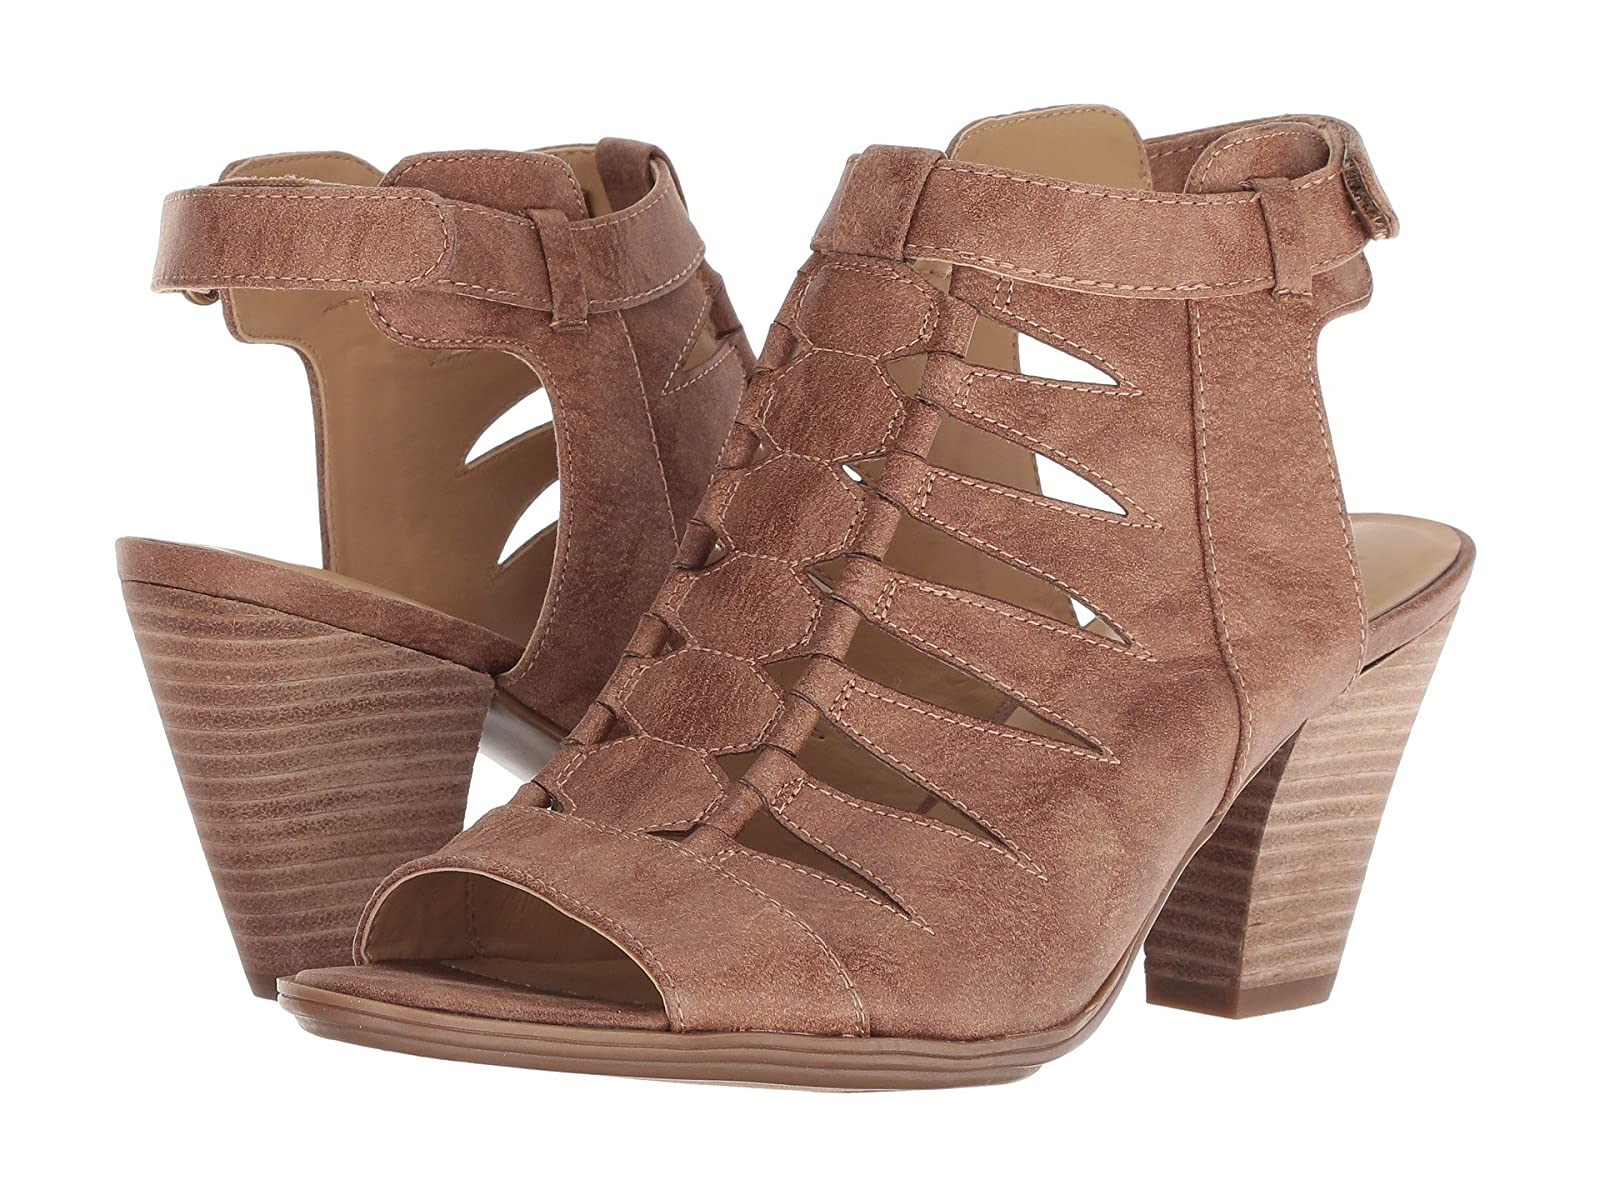 Naturalizer TalanCheap and distinctive eye-catching shoes